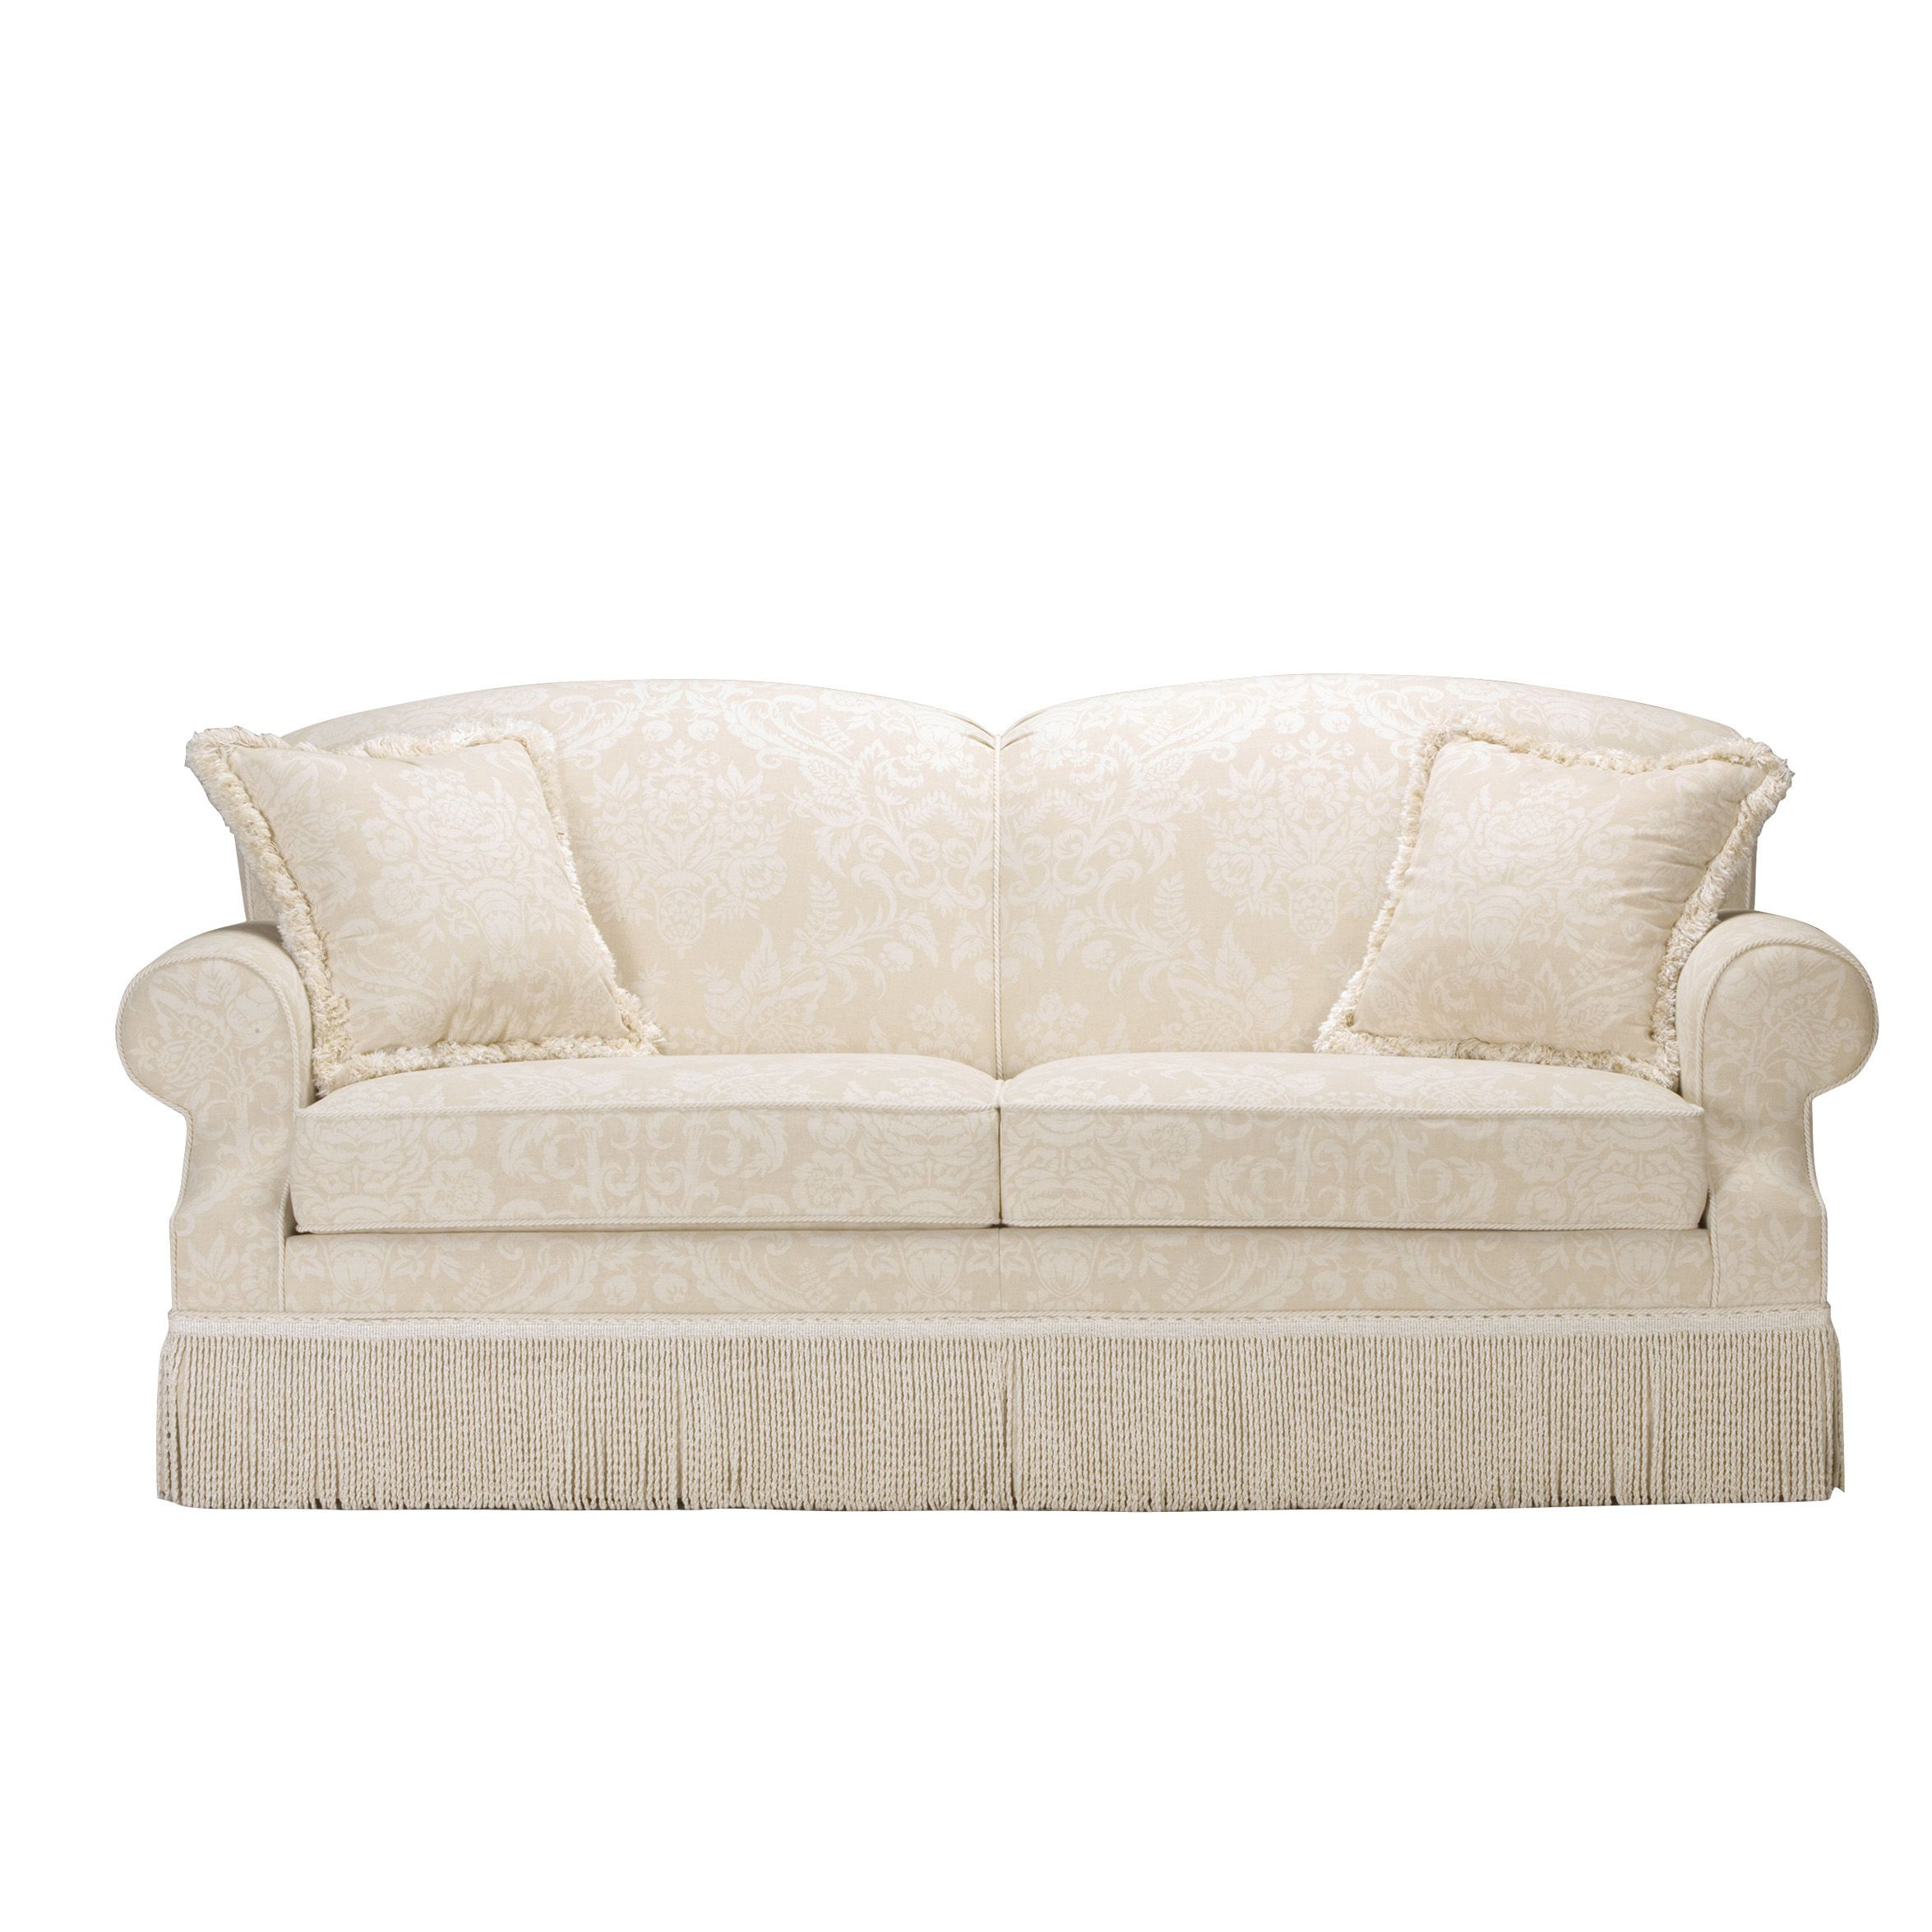 Montgomery Sofas Ethan Allen Us Stuff To Buy